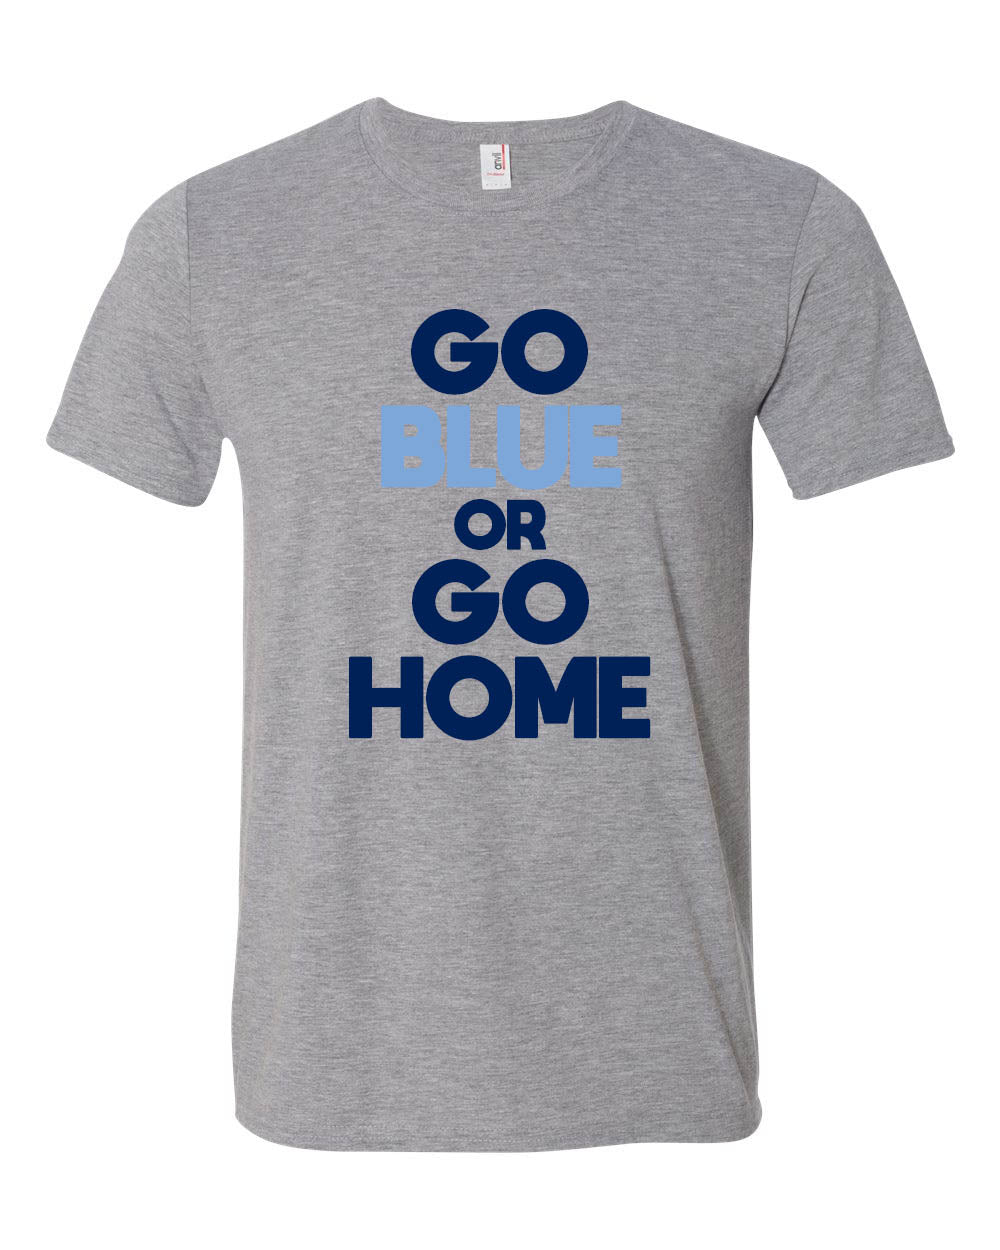 Go BLUE or Go Home T Shirt